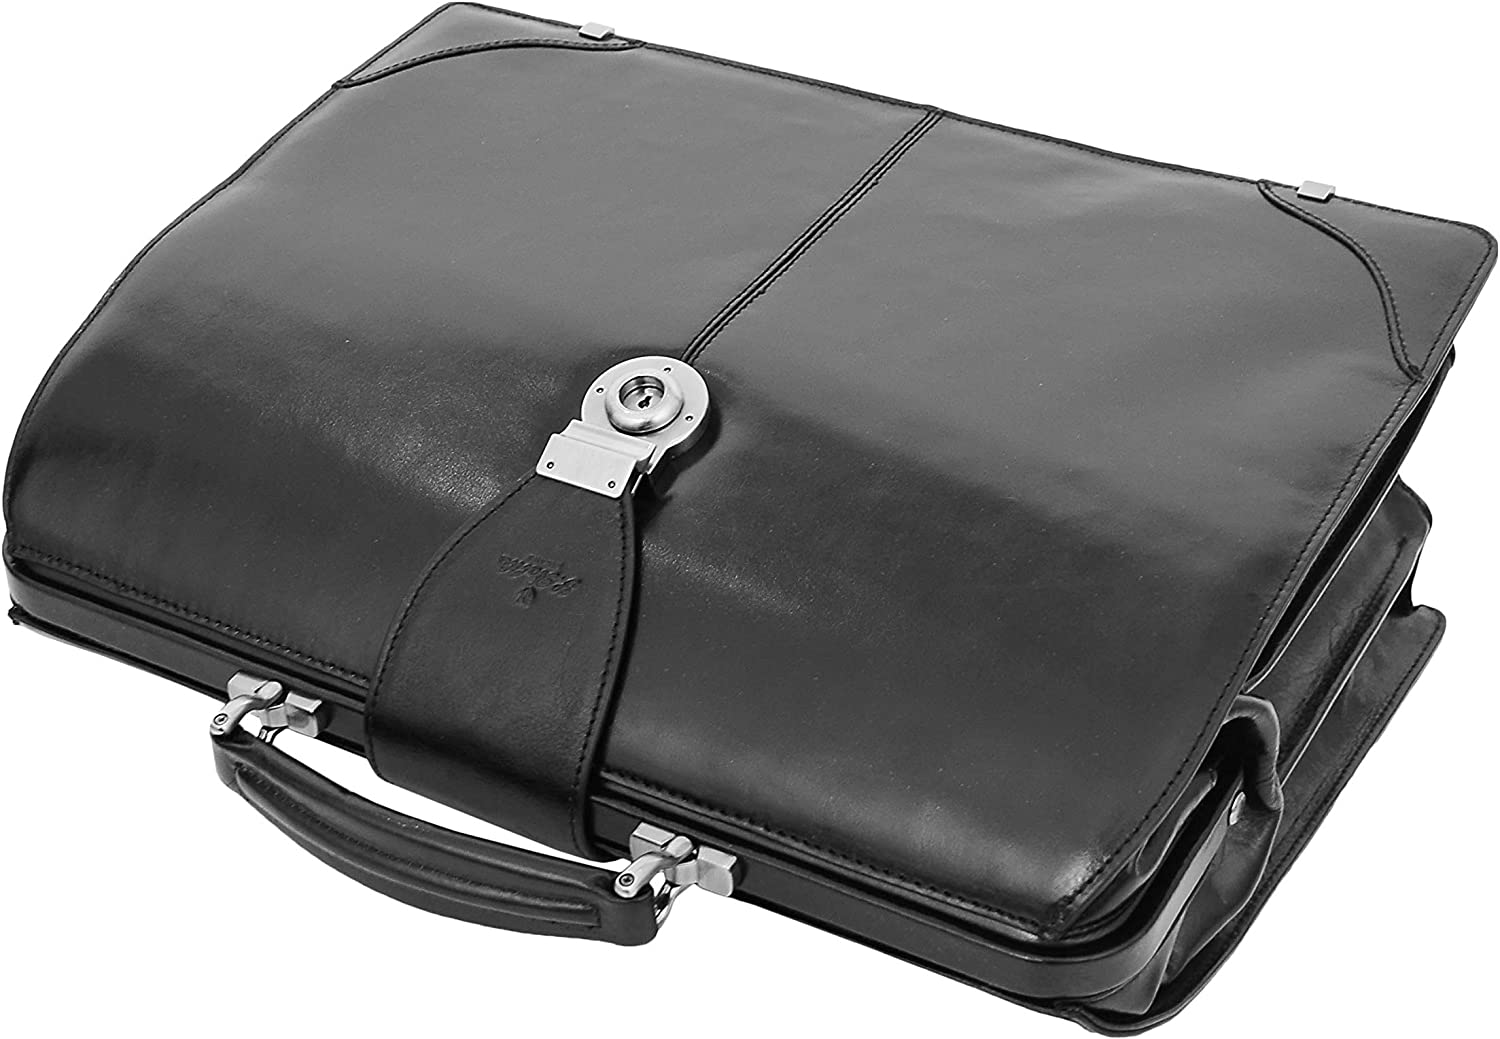 Exclusive Doctors Leather Bag Black Italian Briefcase Lawyers Rep Gladstone Bag Doc